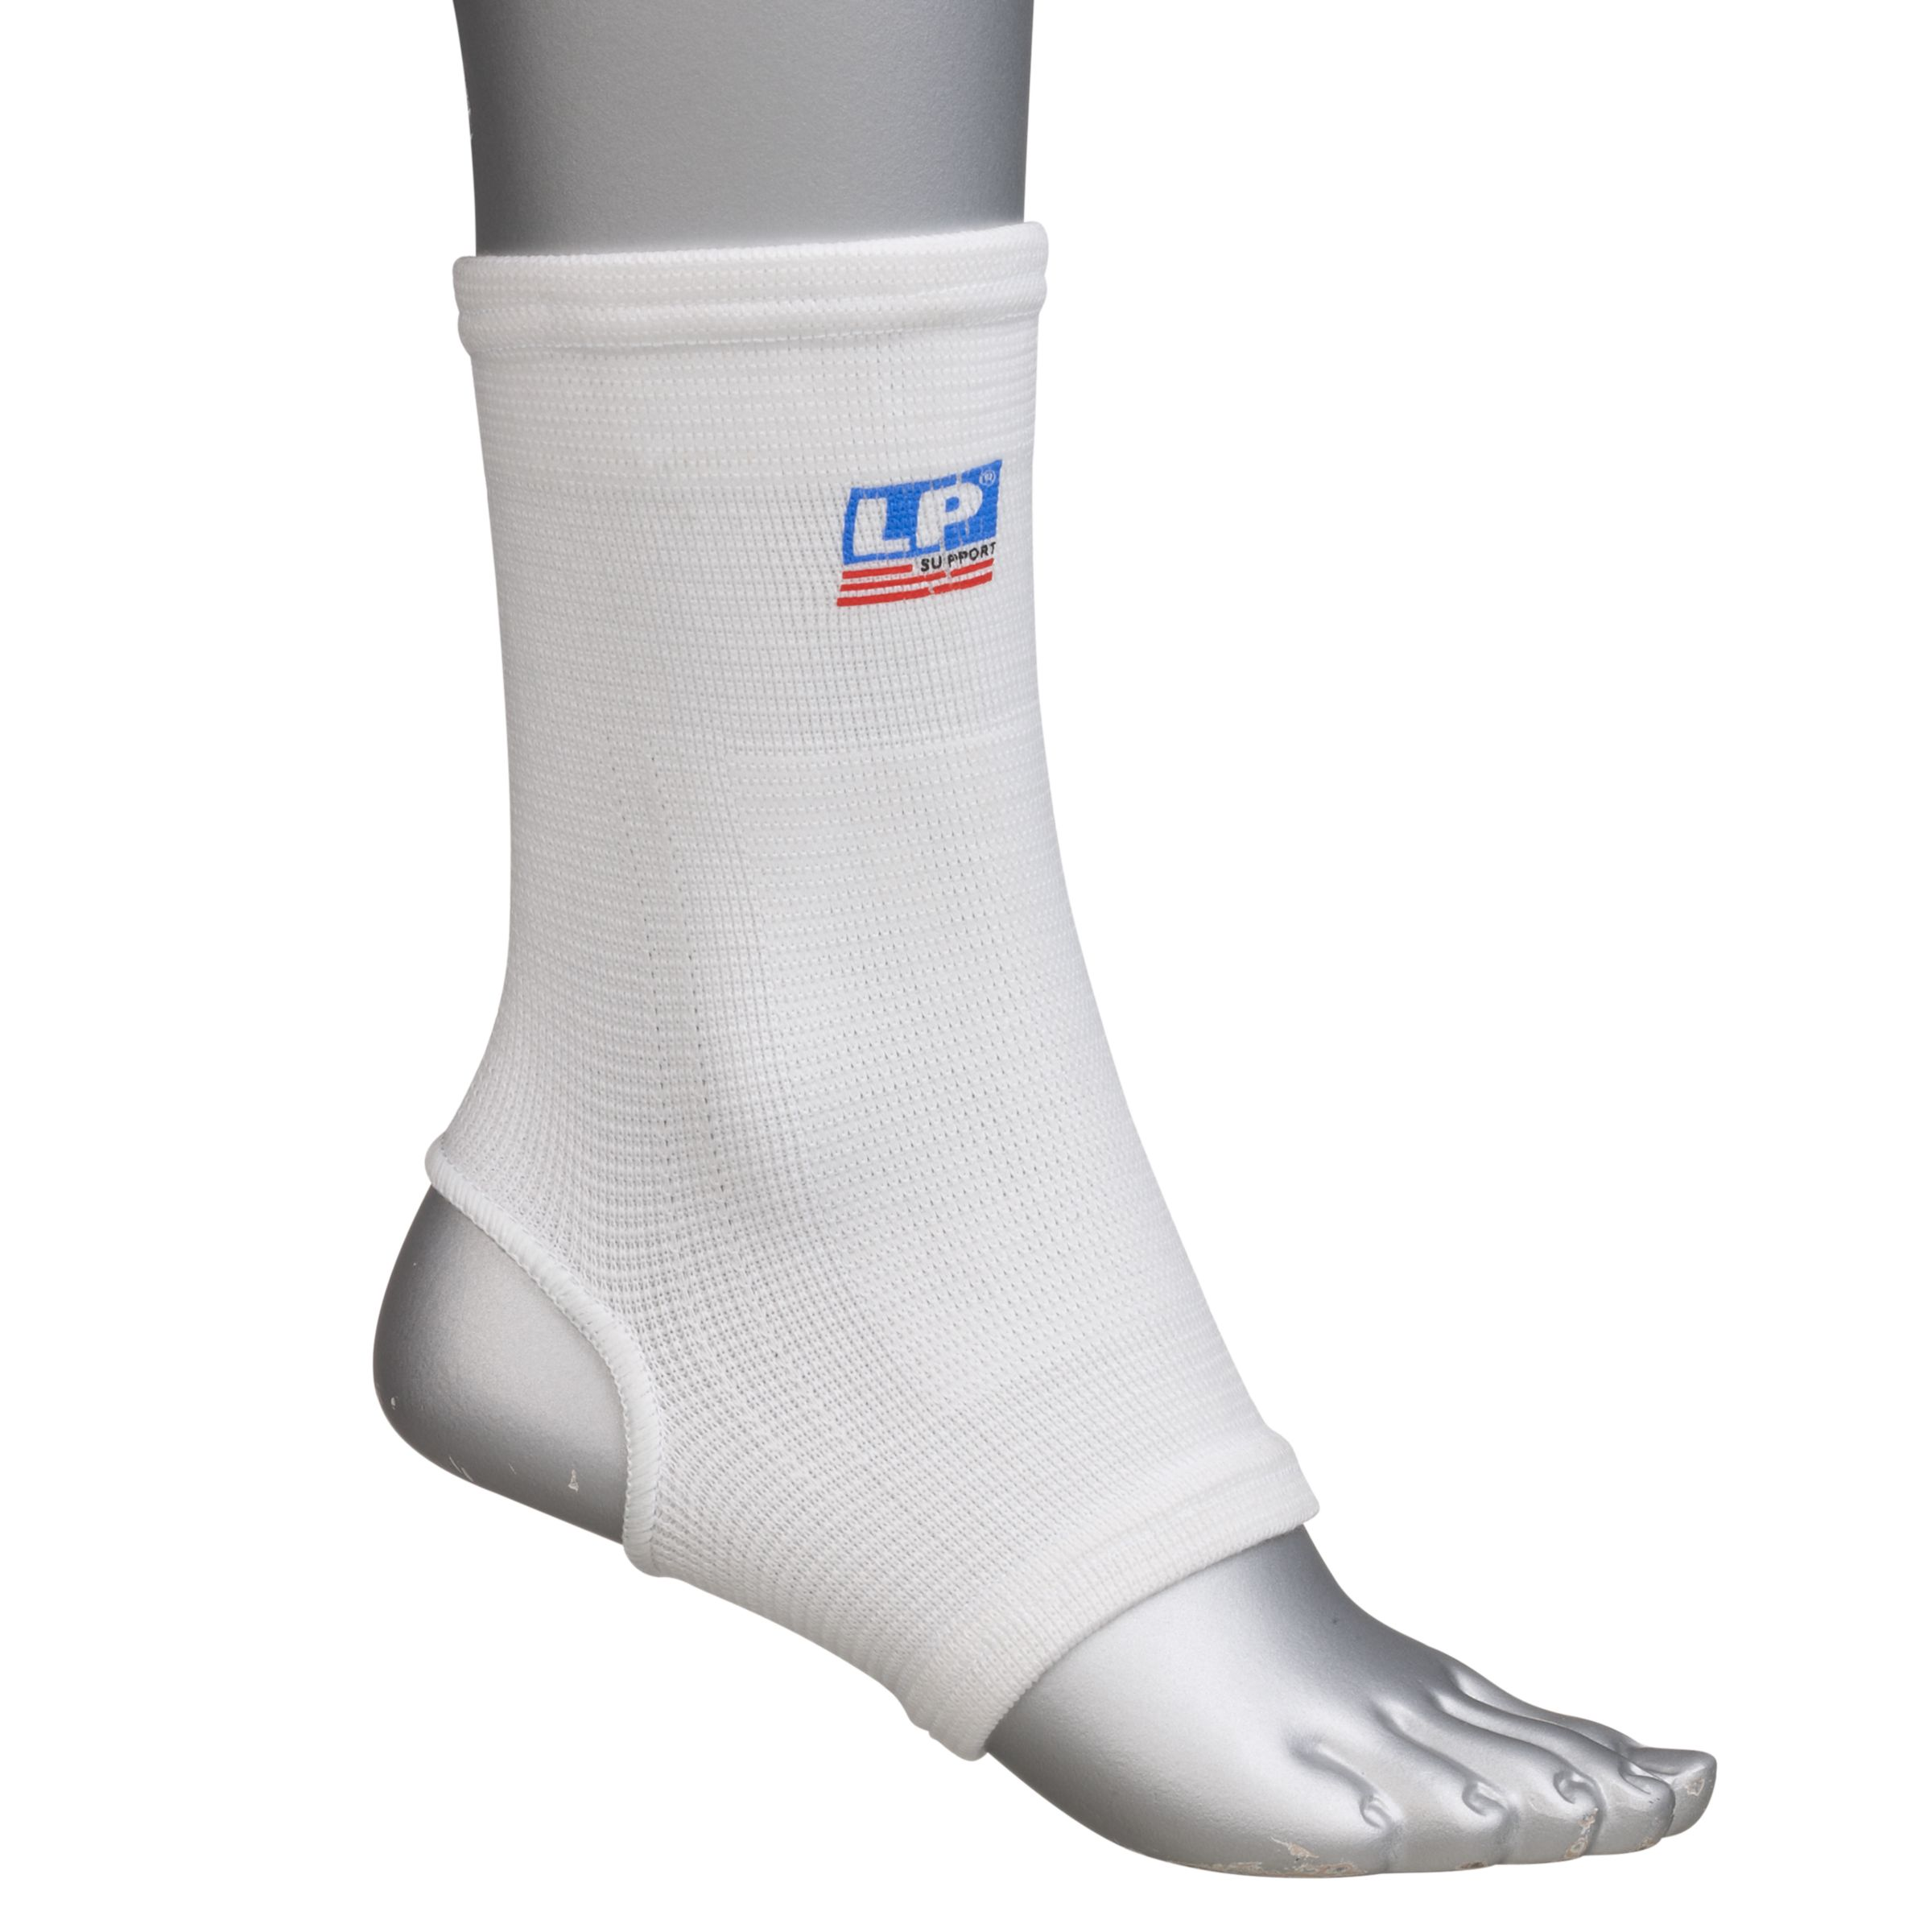 Lp Supports LP Supports Ankle Support